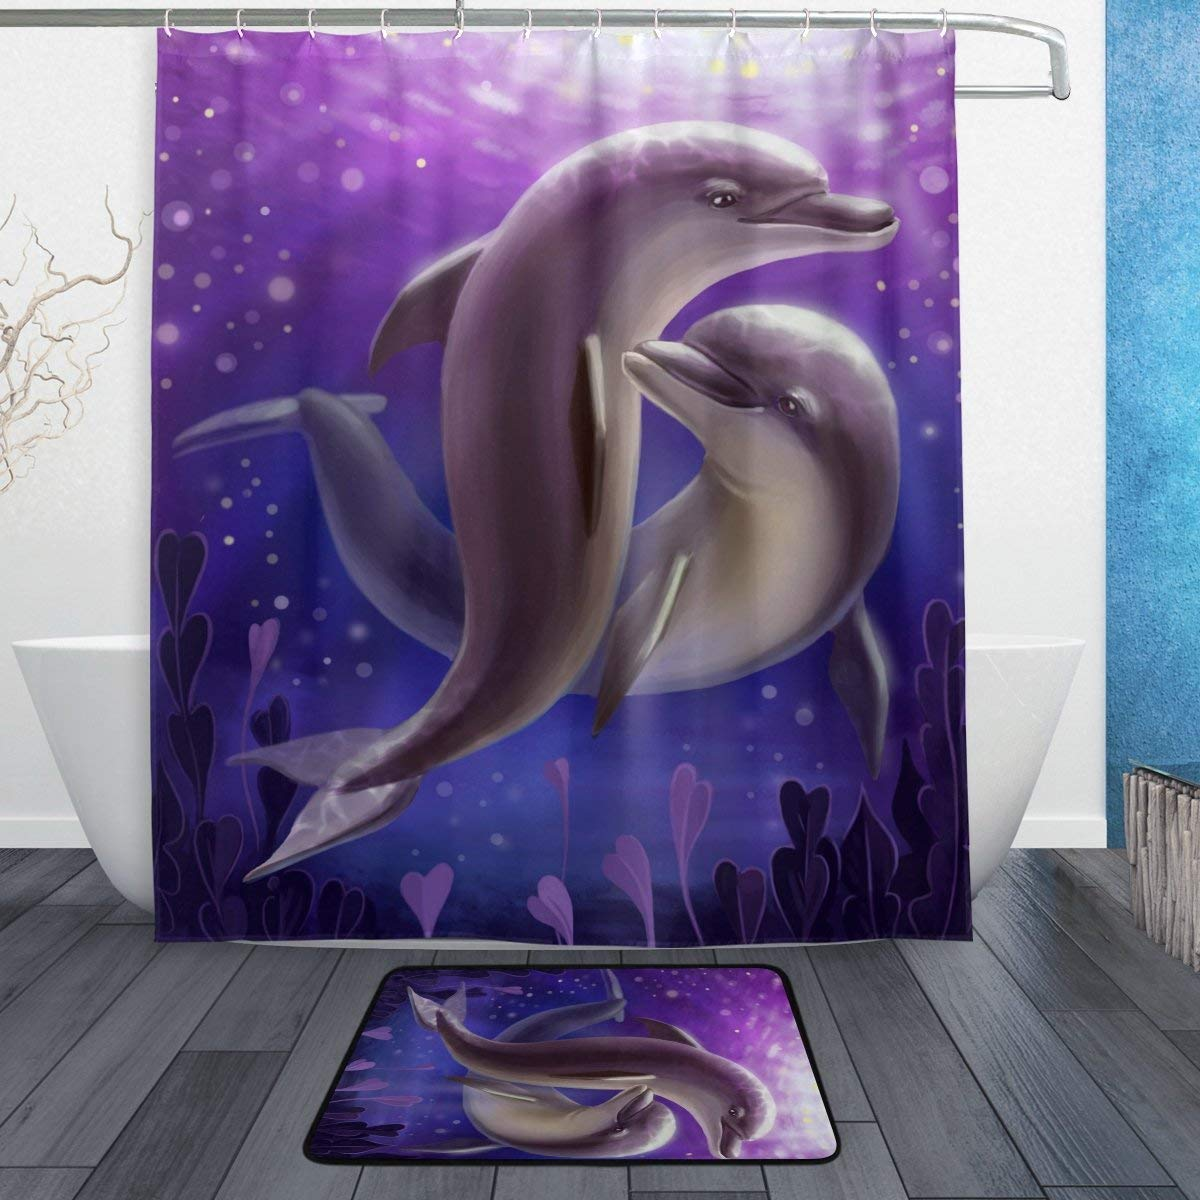 Cheap Underwater Shower Curtain Find Underwater Shower